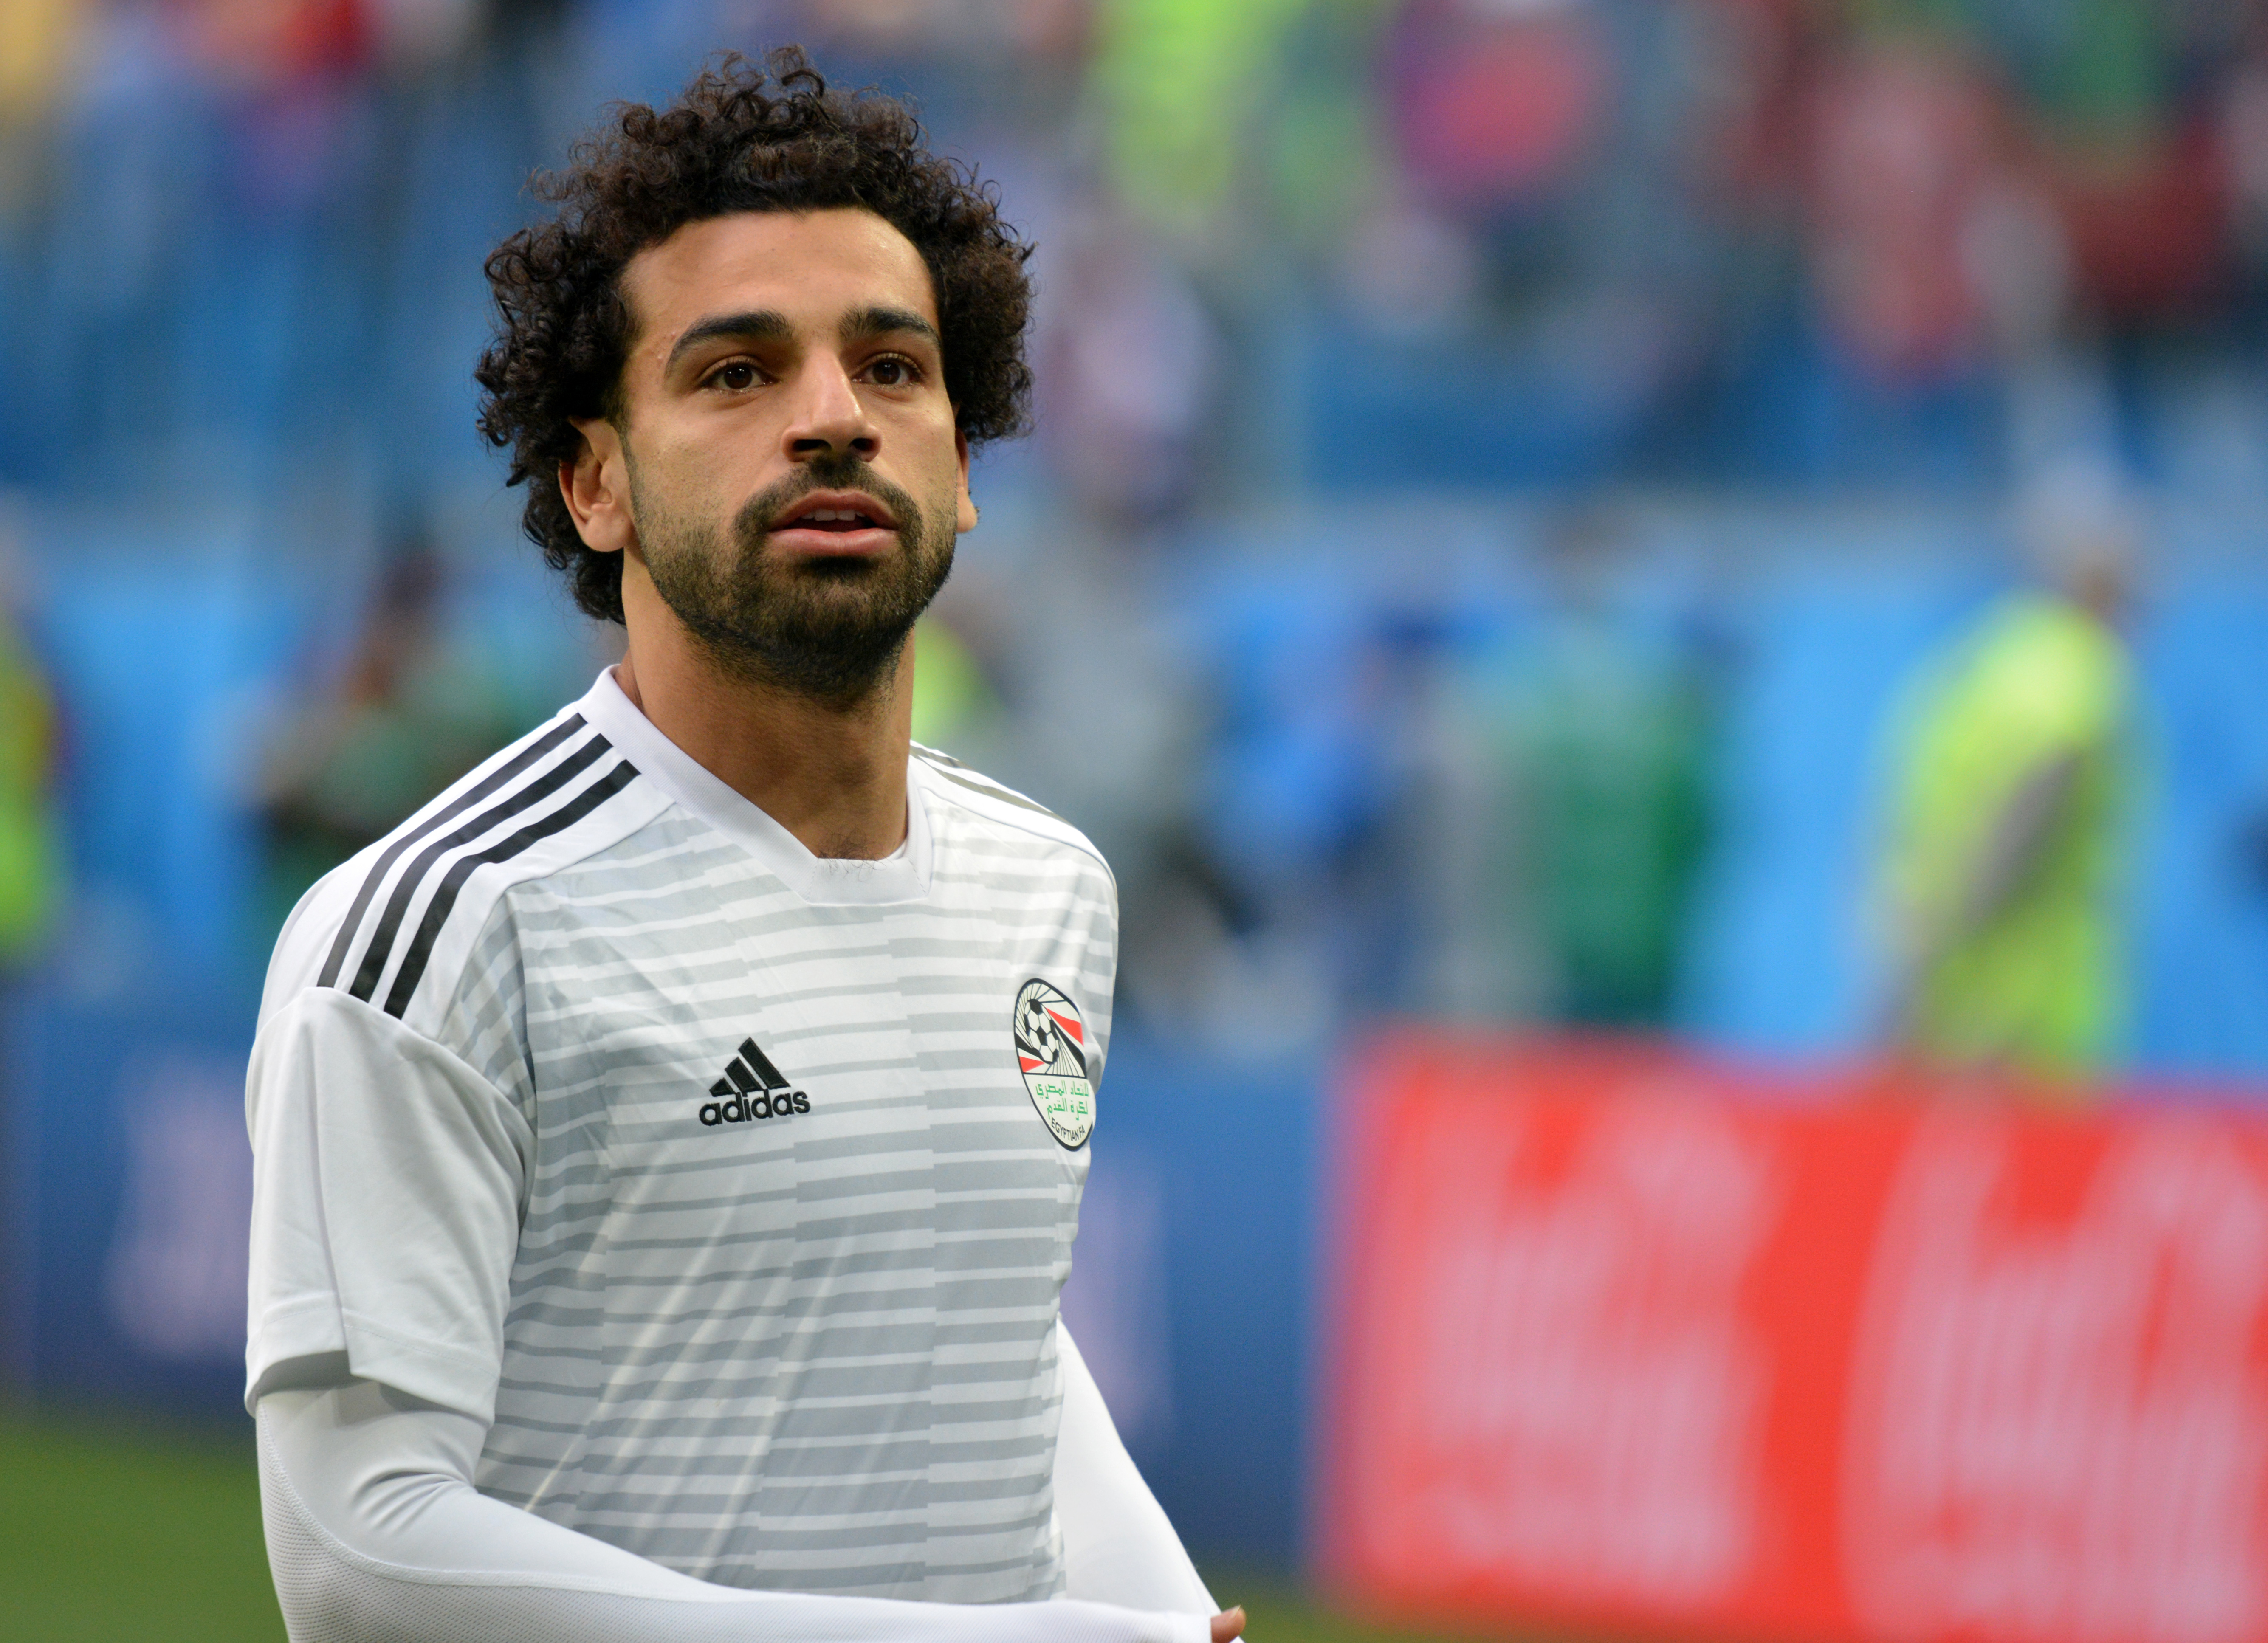 Mourinho claims Chelsea made decision to sell Salah and not him